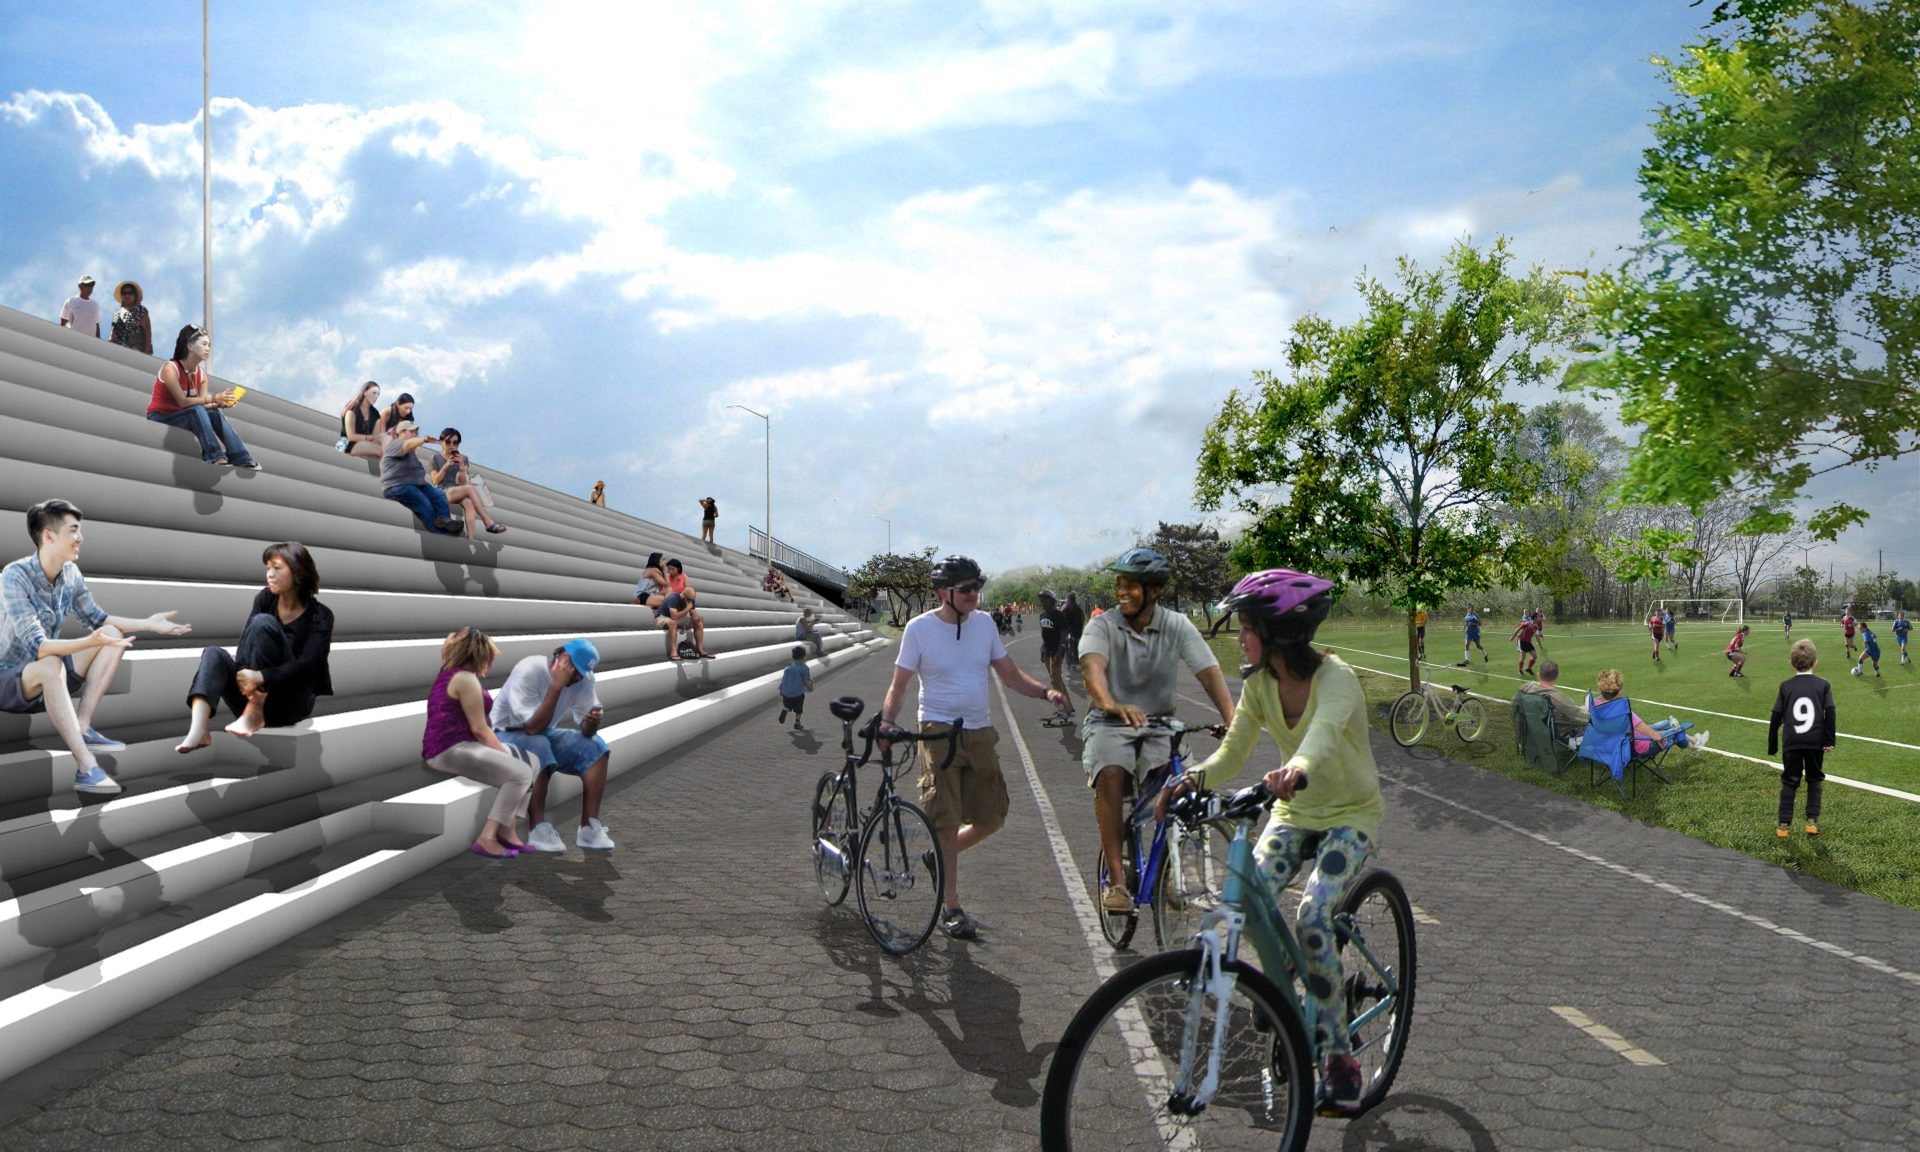 The seawall, a landscape/infrastructure hybrid, will be a social spine providing pedestrian, ADA, and emergency access up and over it.